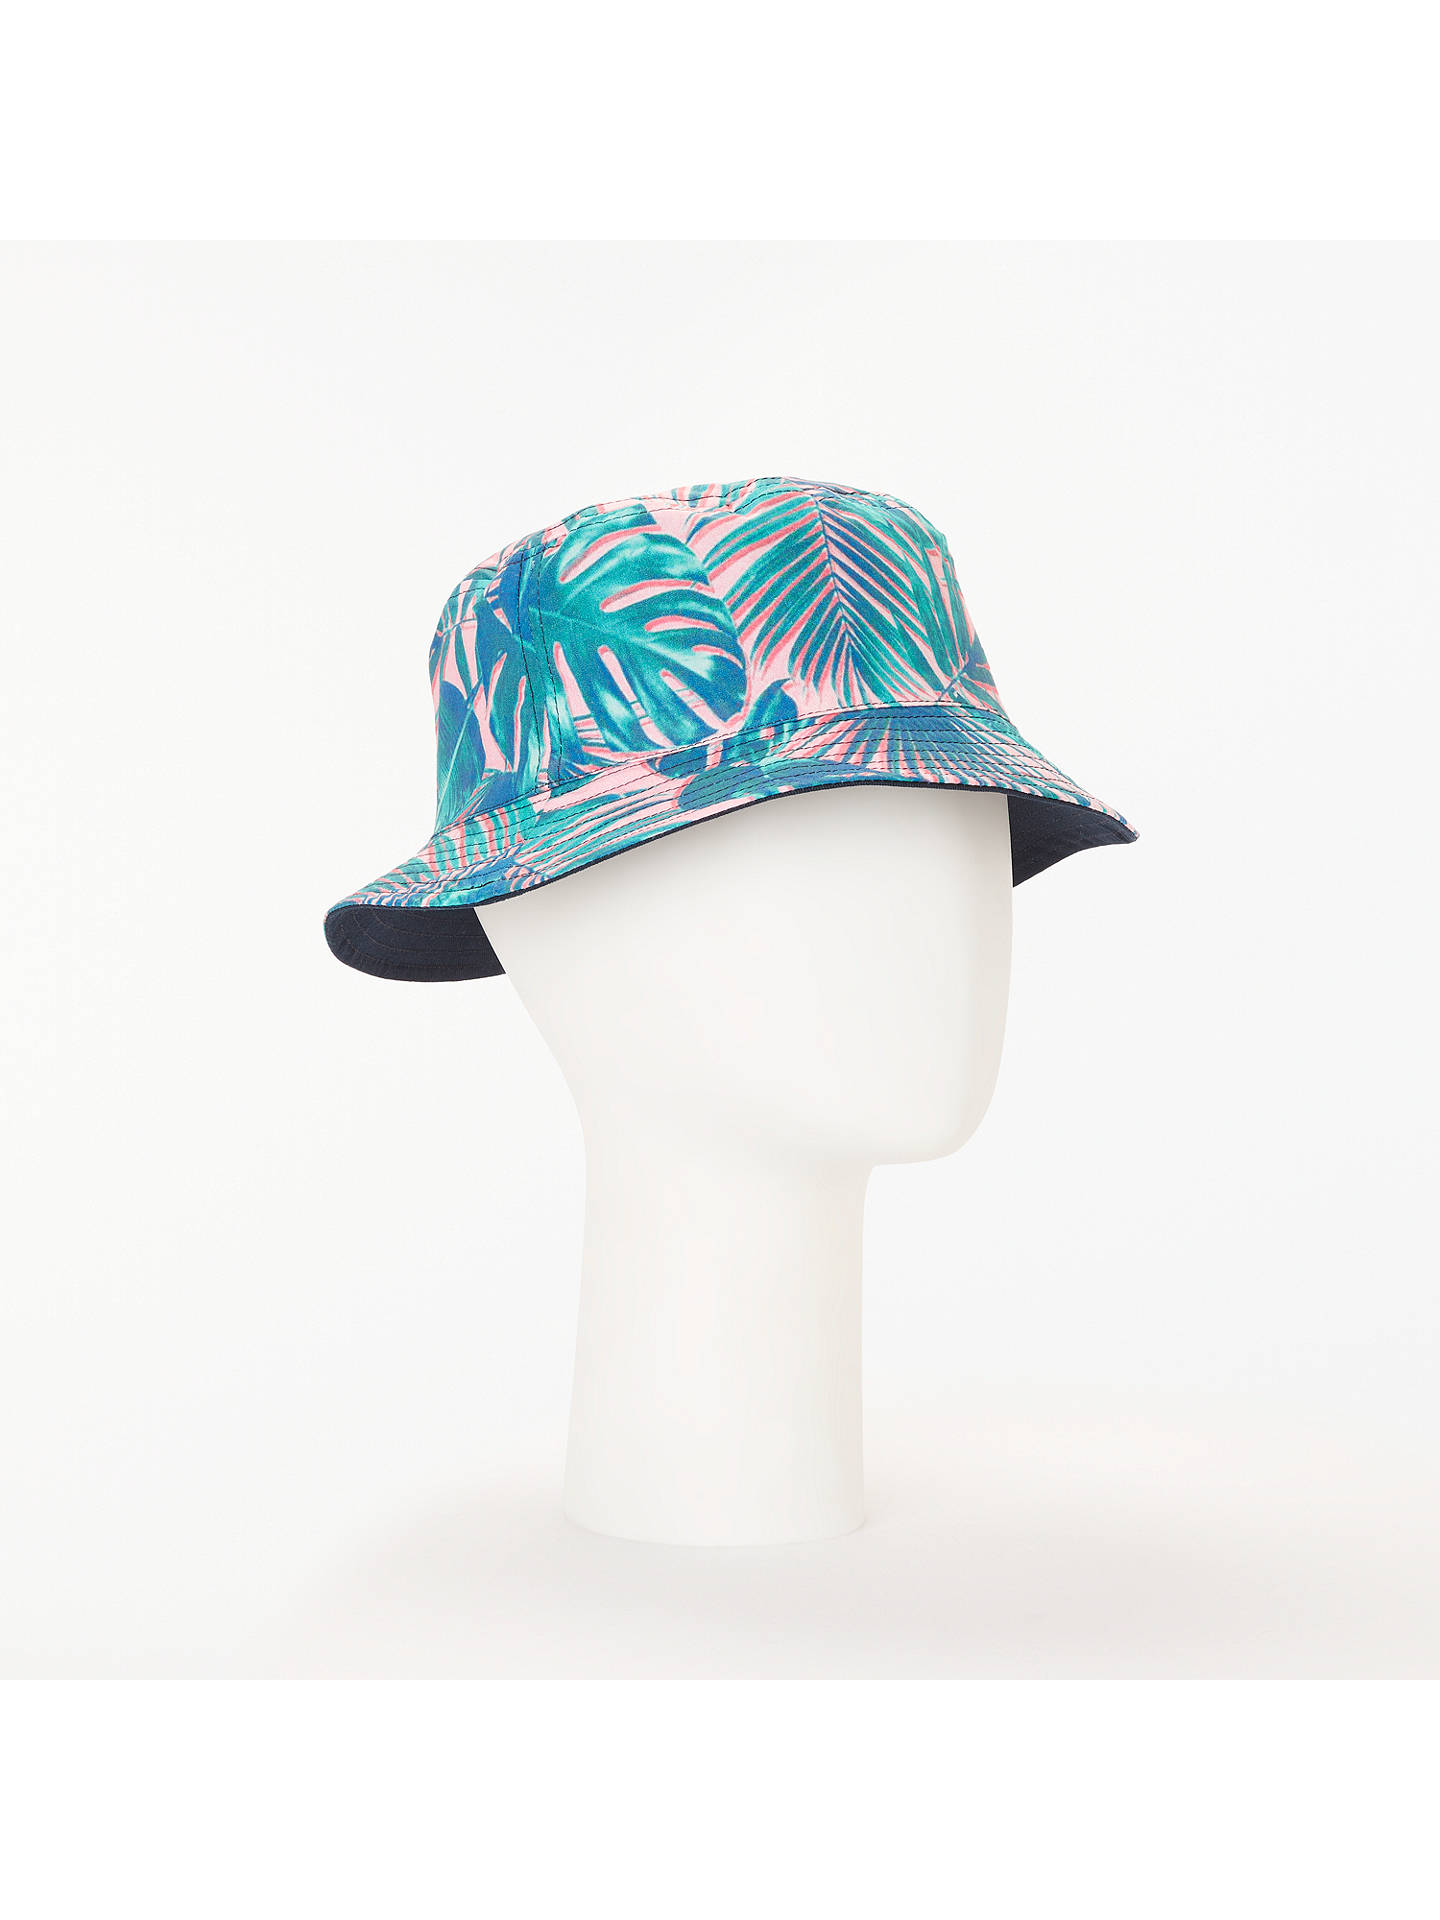 b940f816937 BuyJohn Lewis   Partners Reversible Bucket Hat